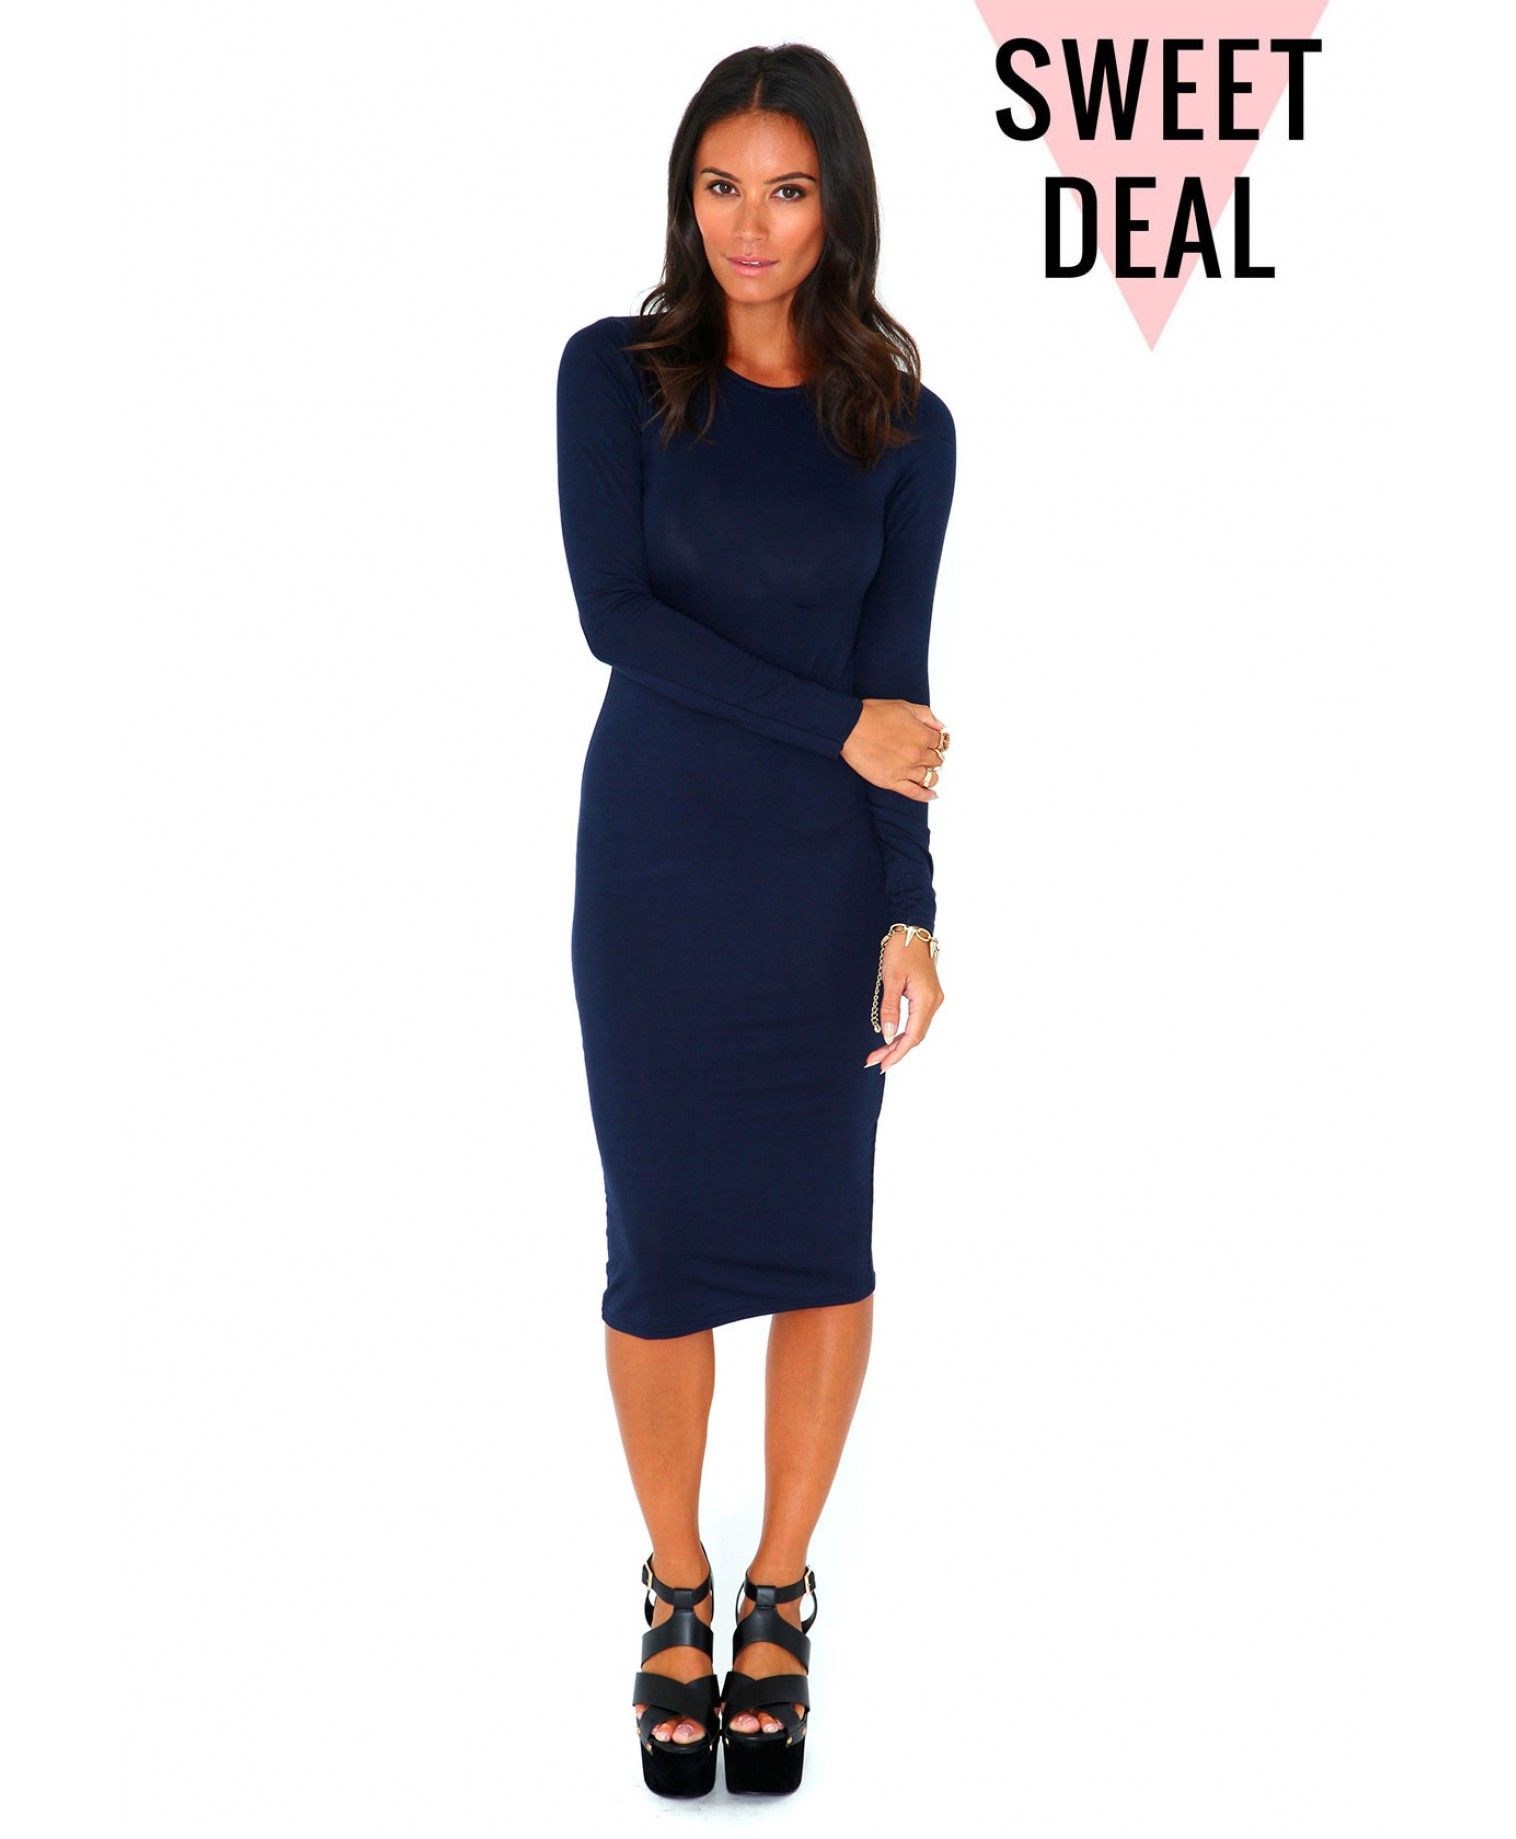 Hilfiger macy's values does dress bodycon mean what it outfits verona